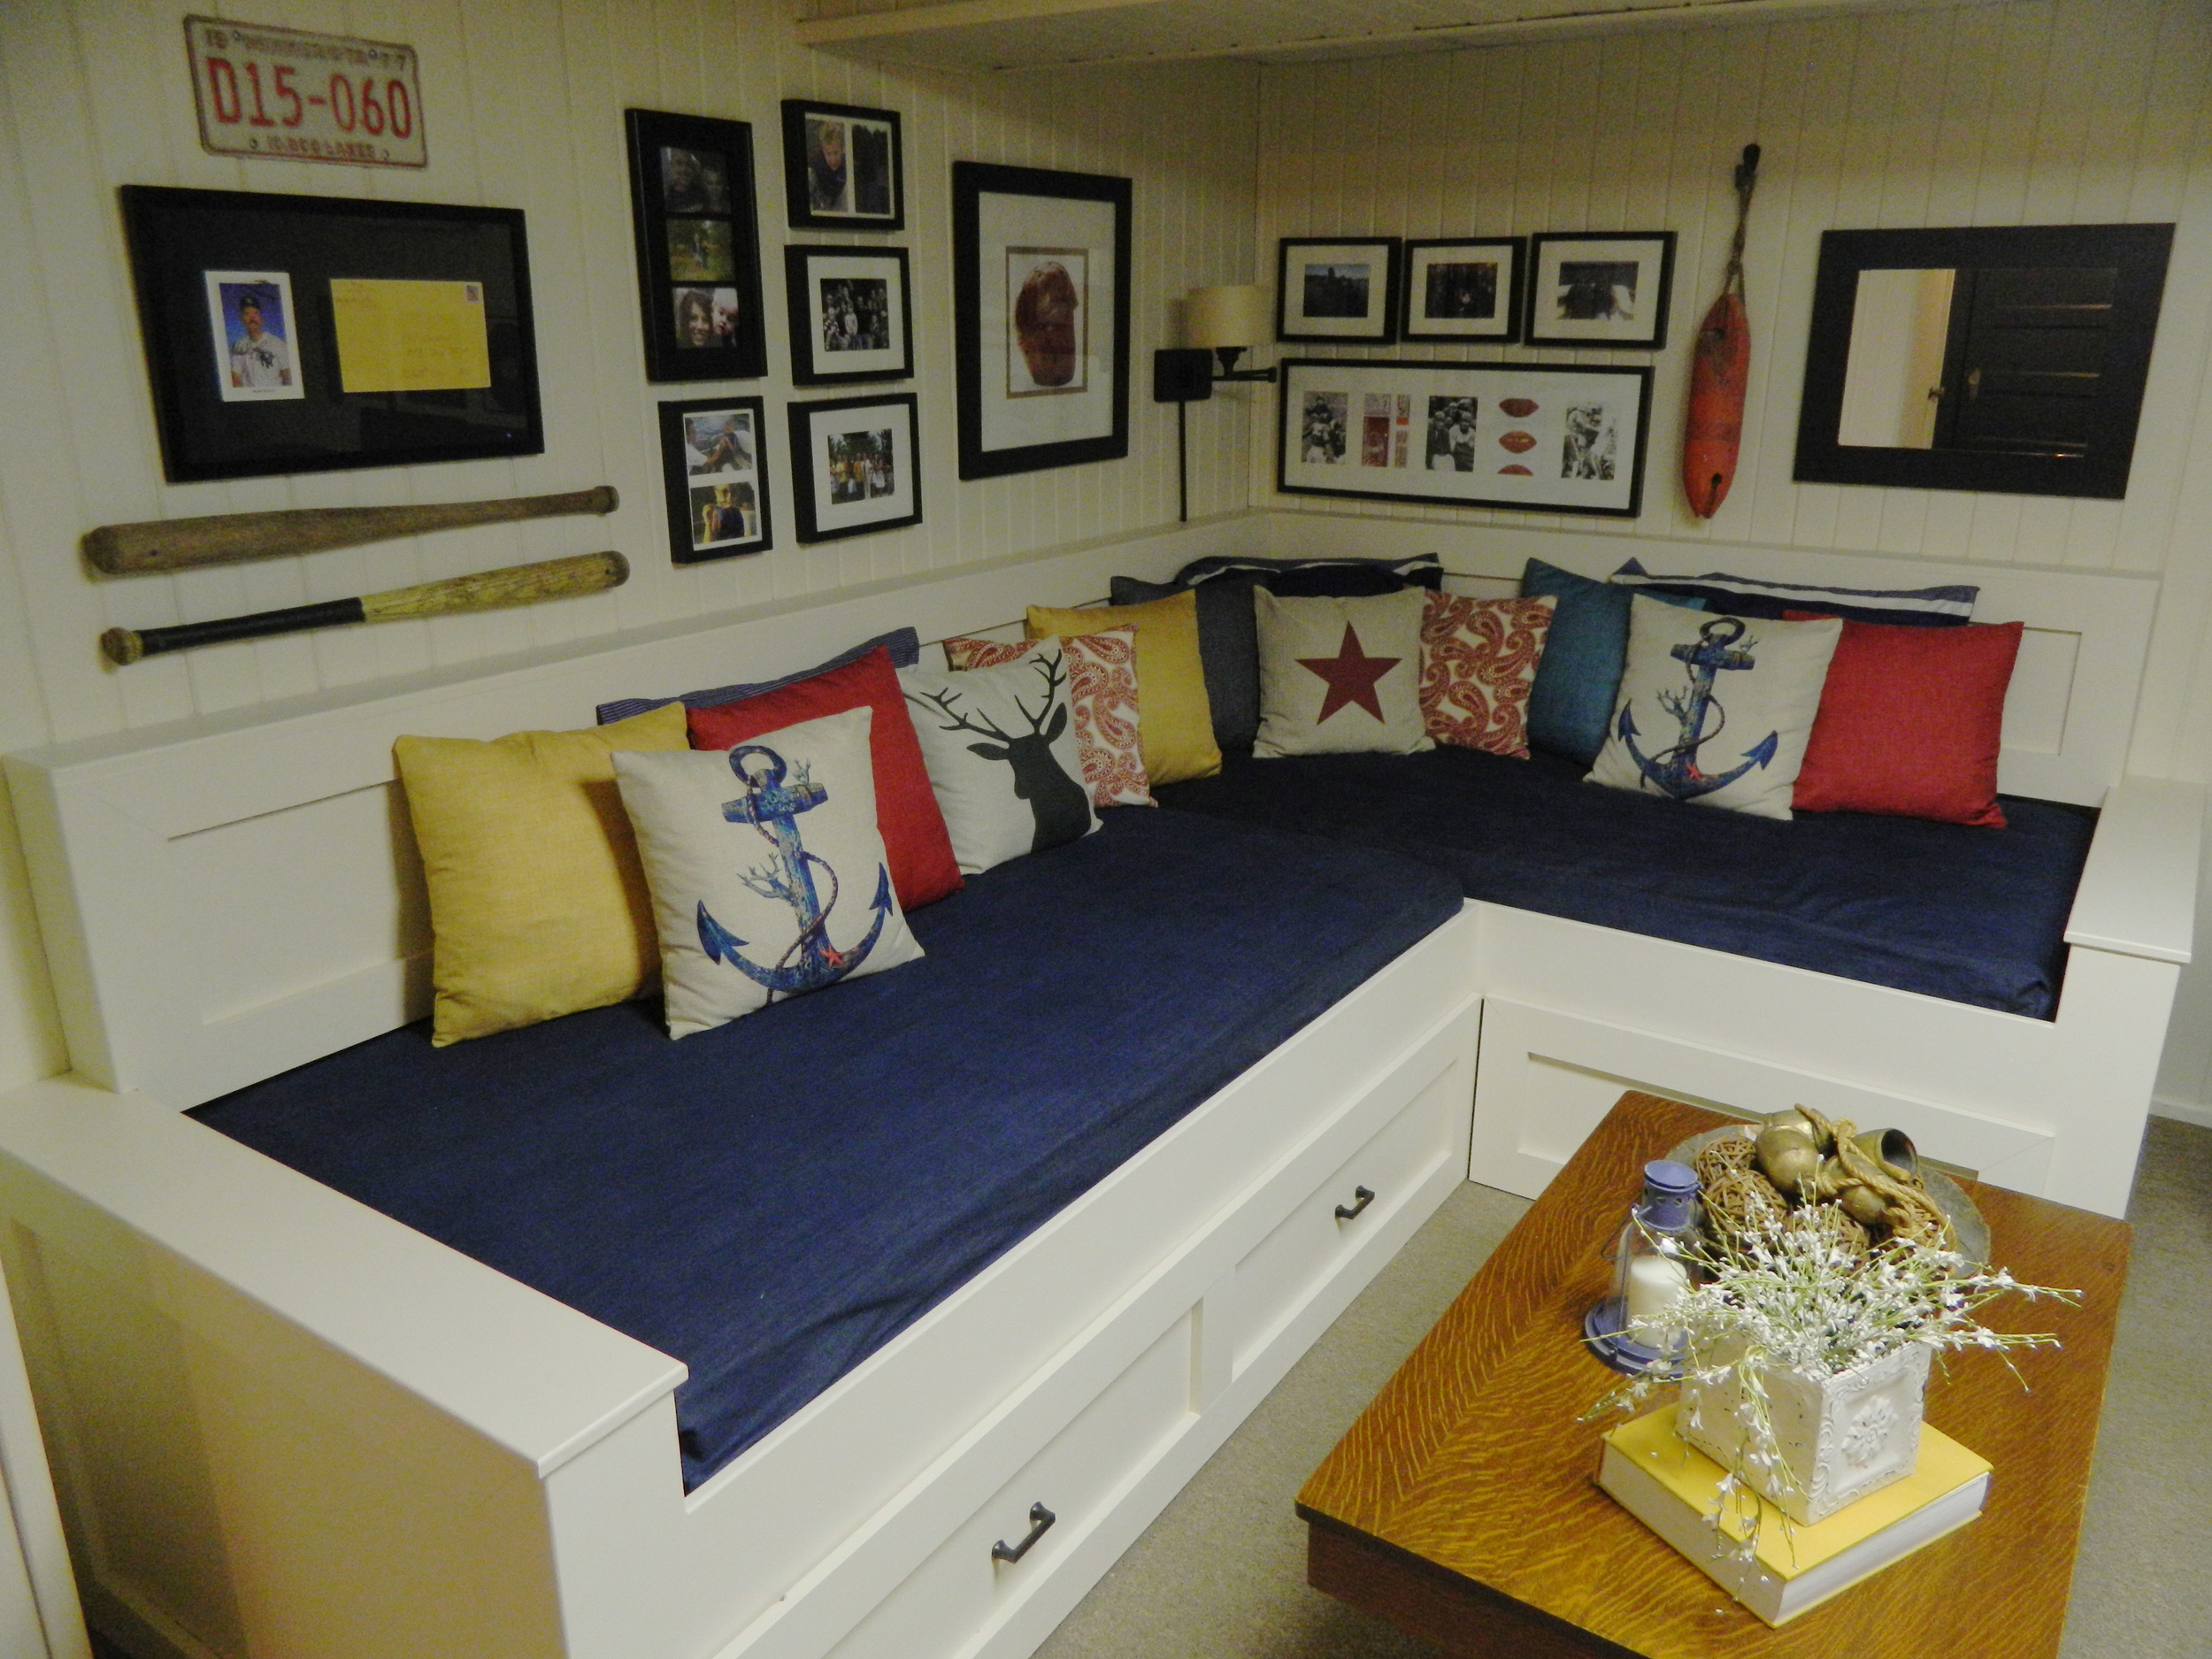 Custom Built Sectional with Trundle Bed